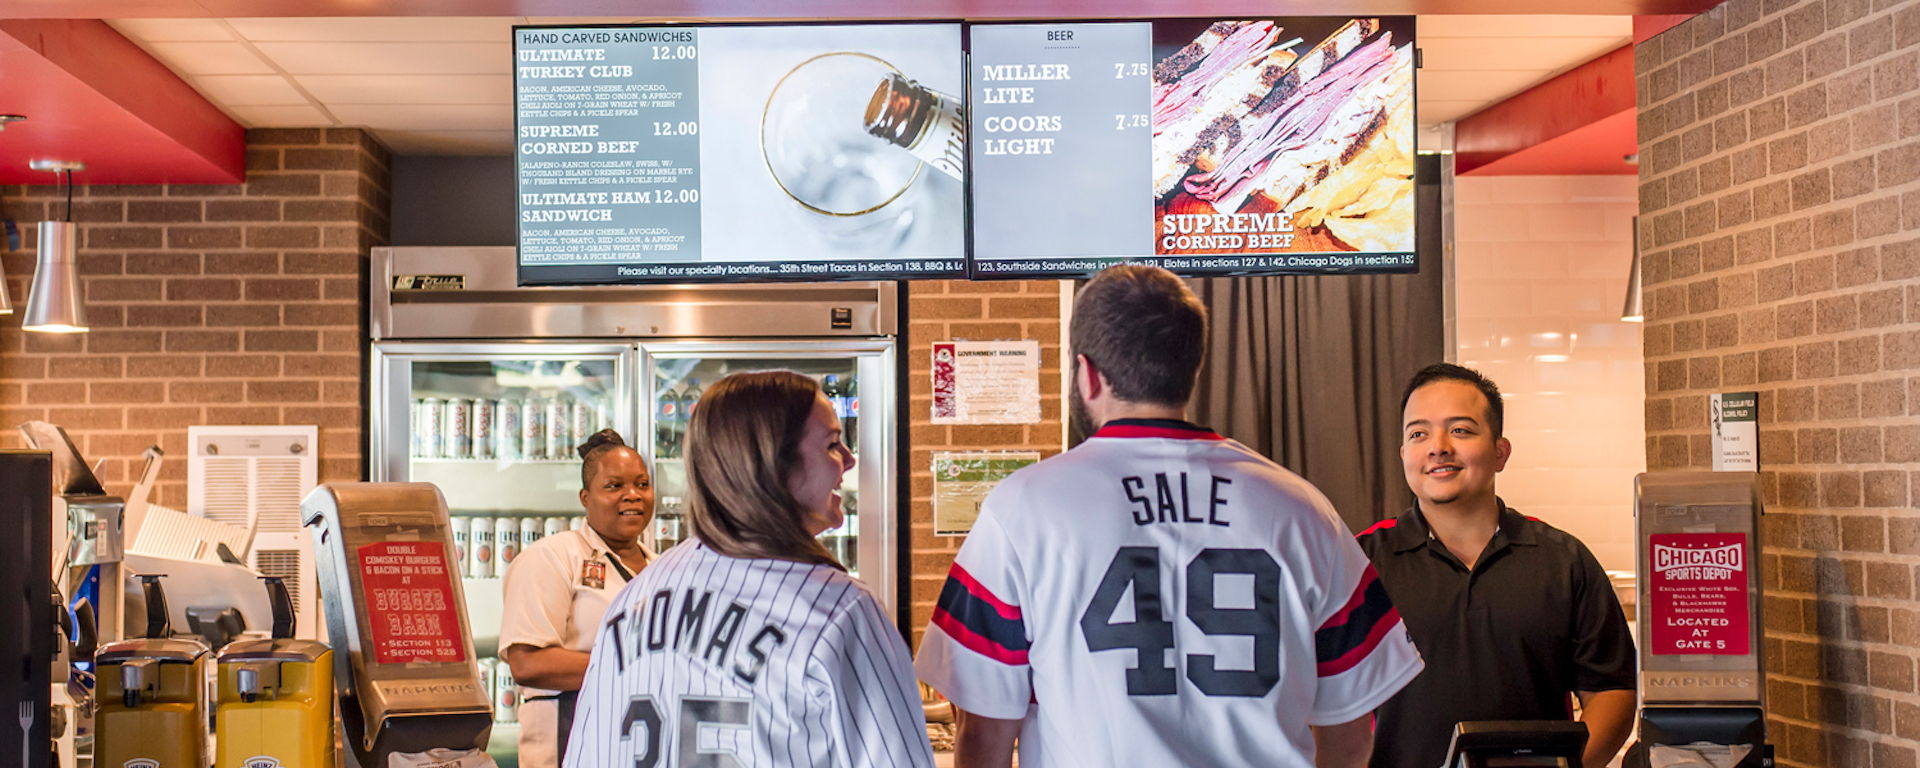 Digital signage menu boards are transforming sports concession stands.